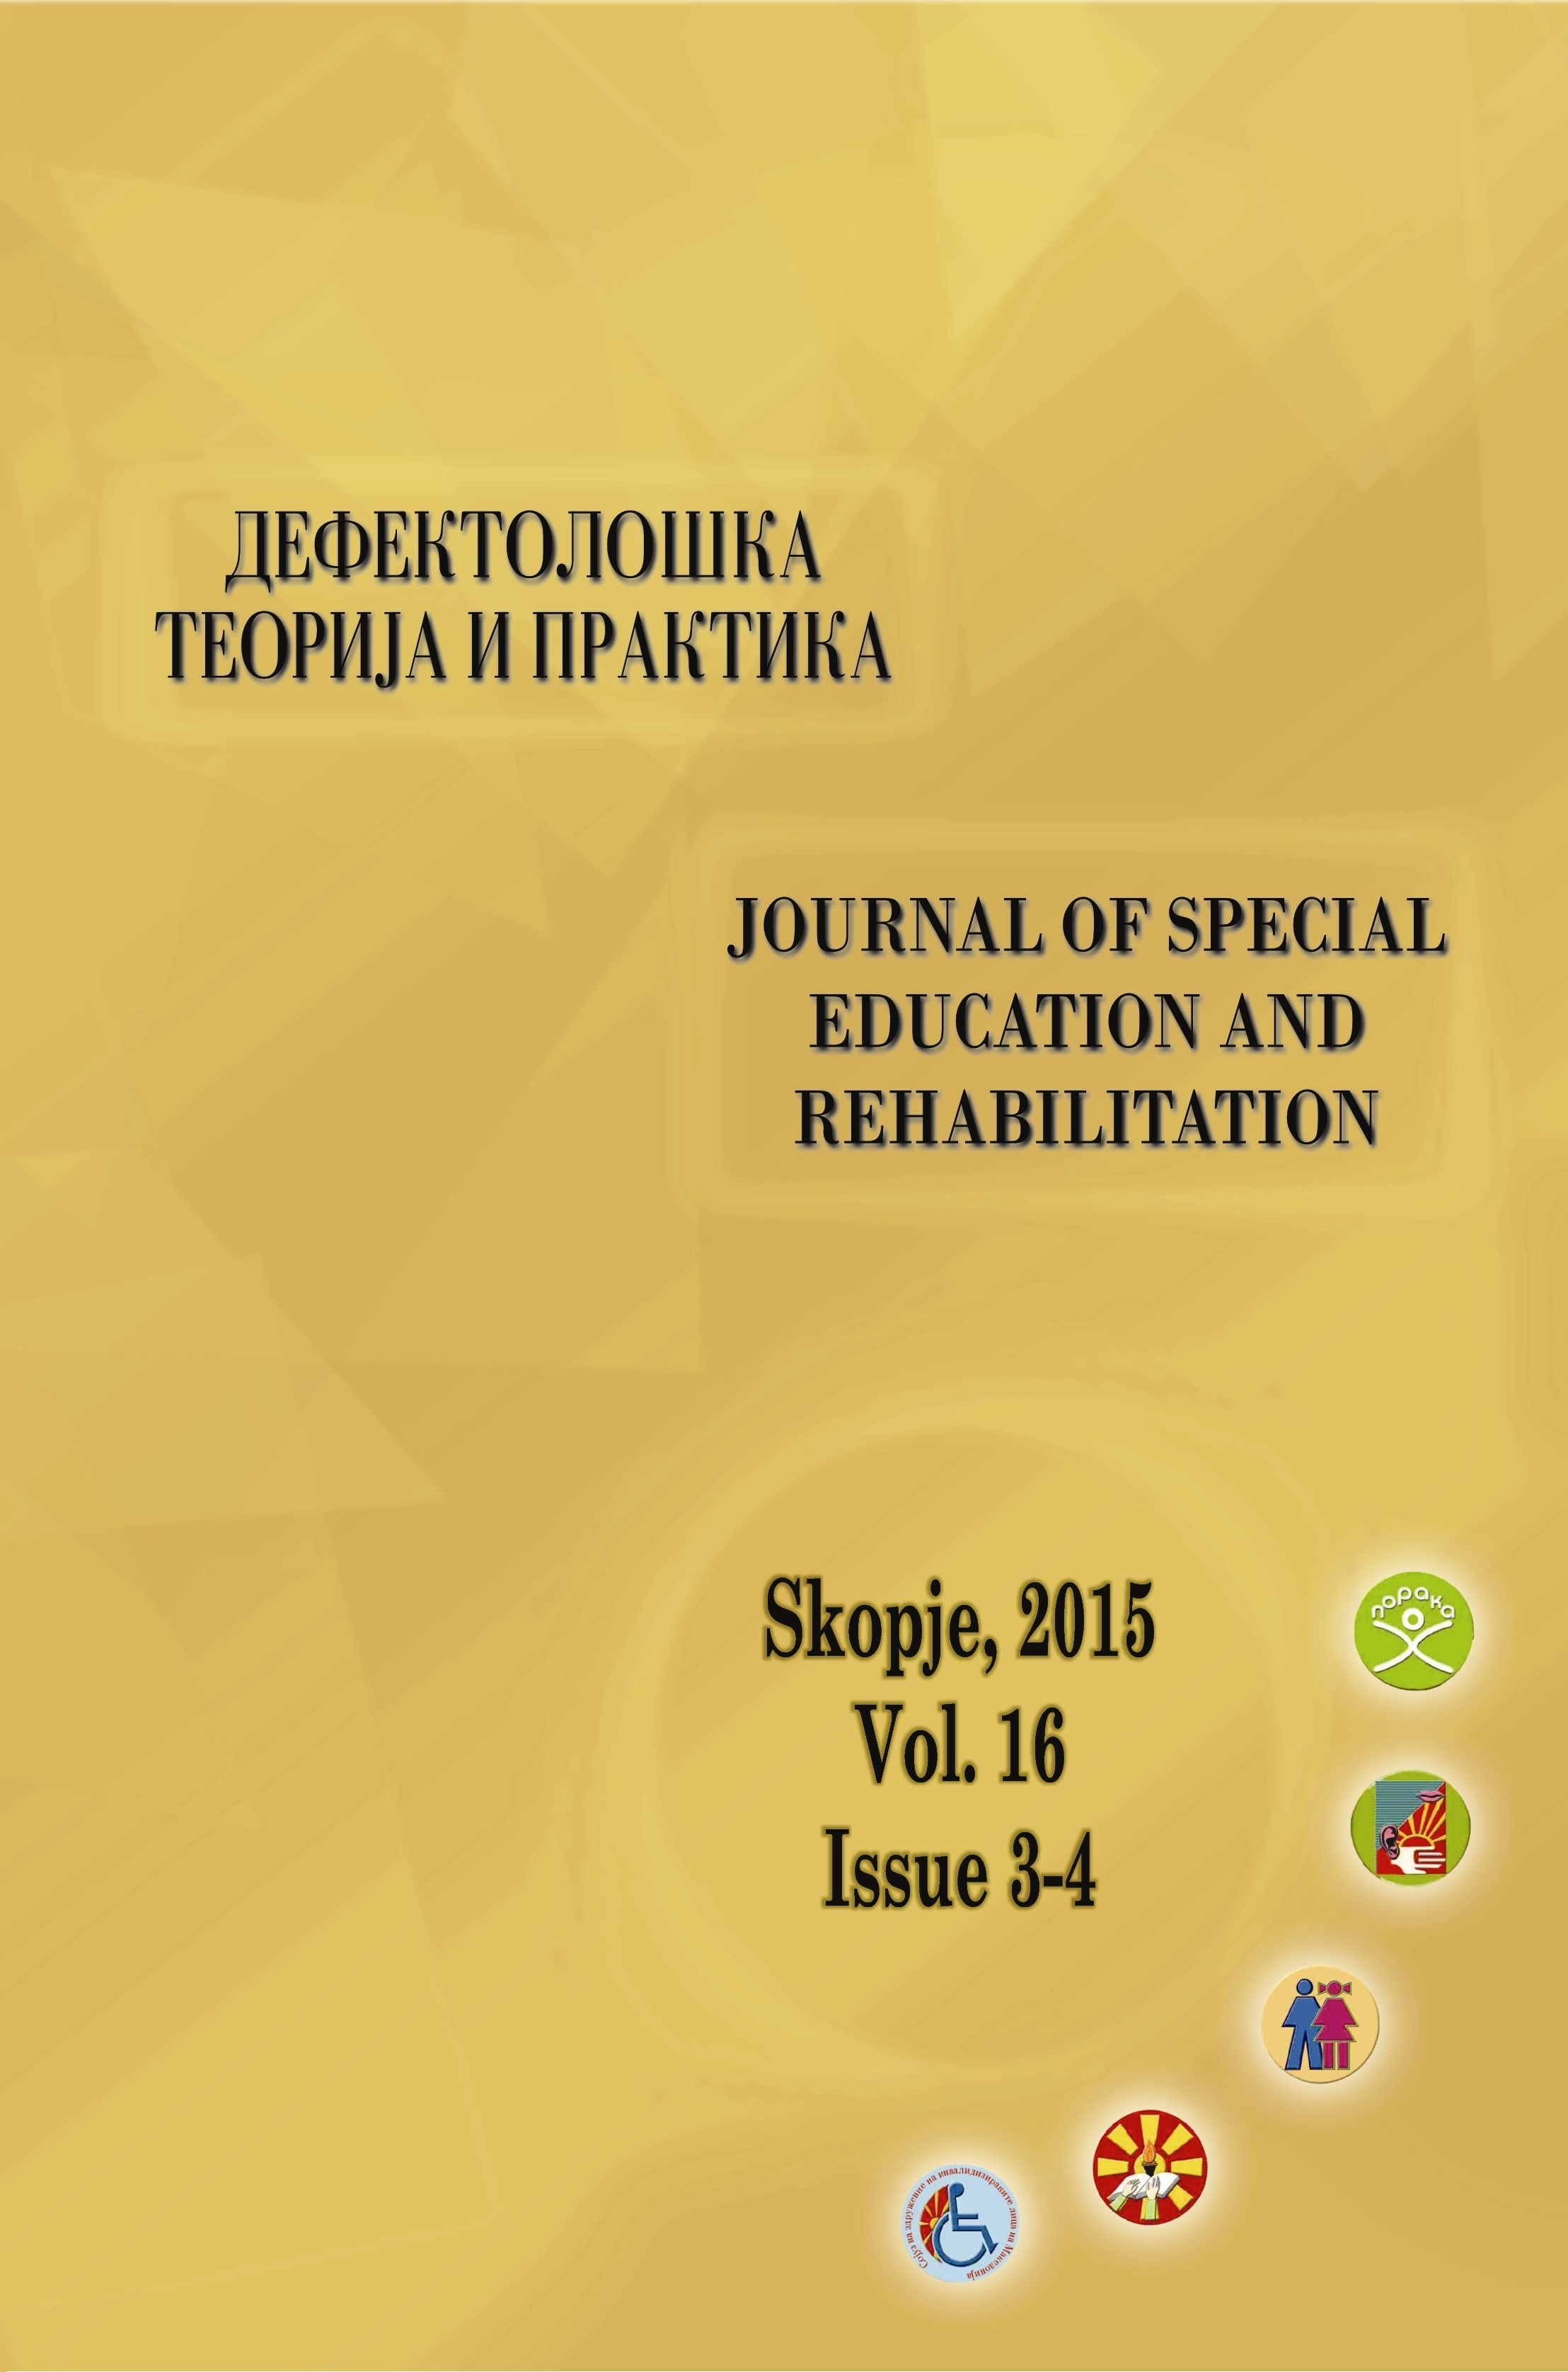 special education journal article critiques International journal of special education | the international journal of special education publishes original articles concerning special education experimental as.